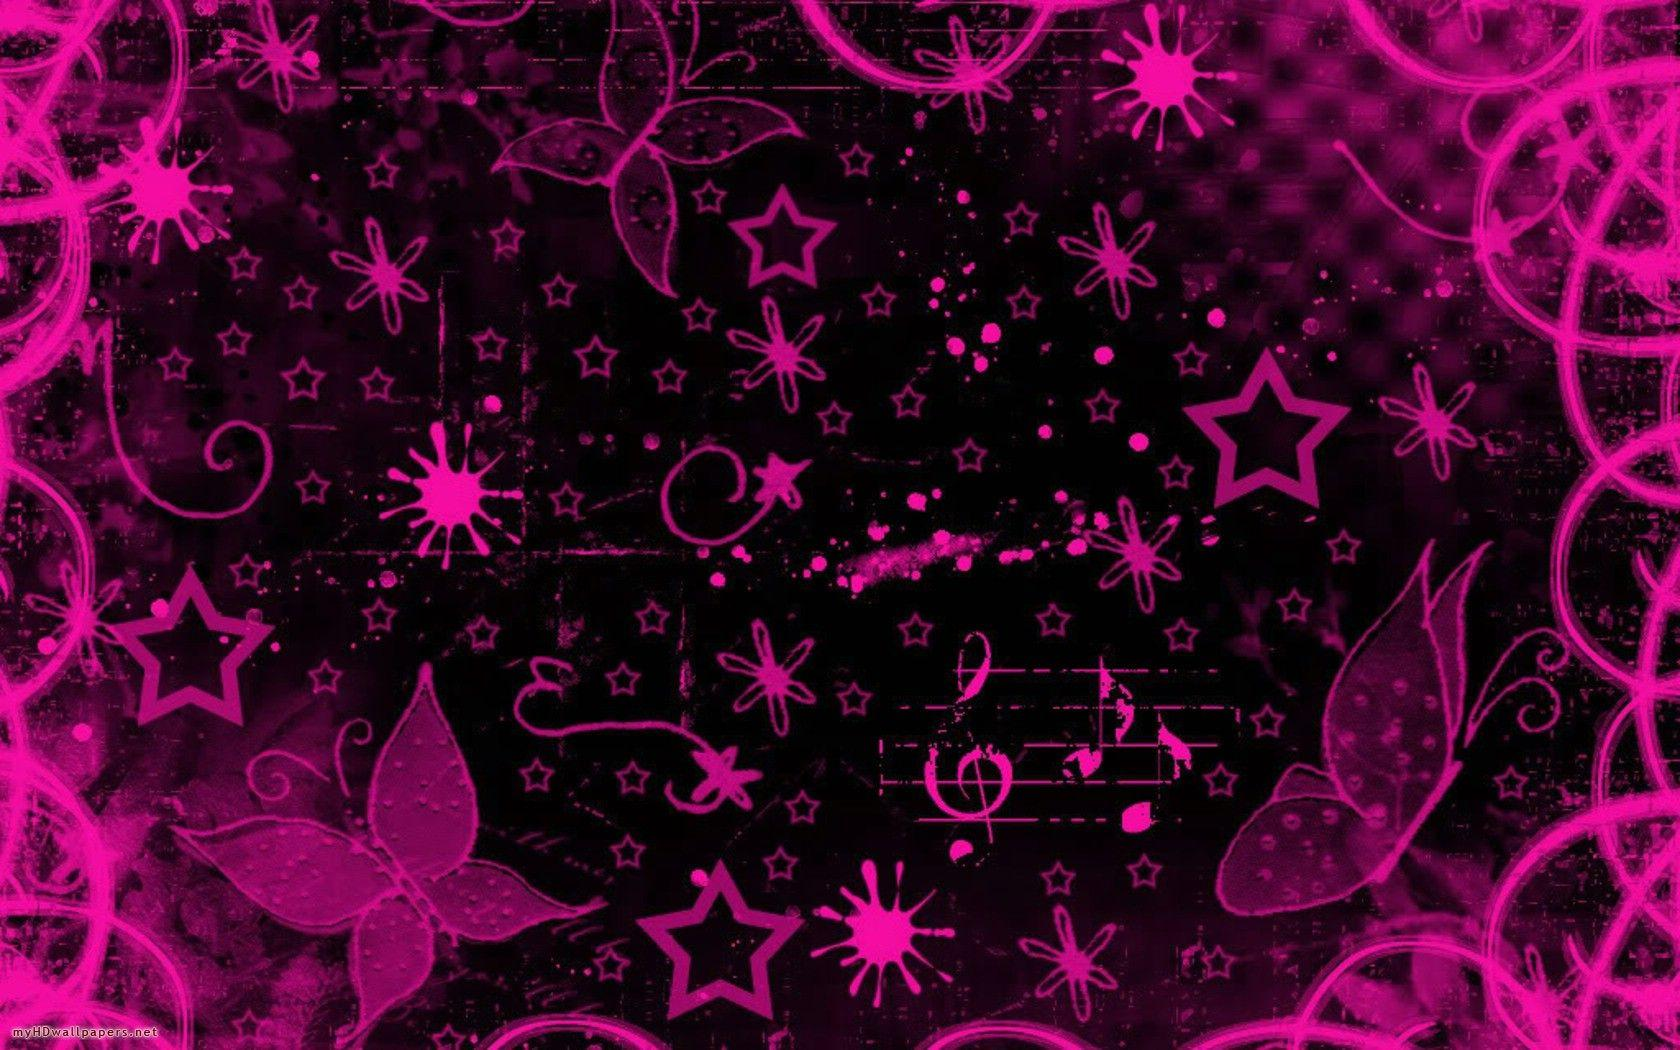 My HD Wallpapers » Blog Archive Pink black design - My HD Wallpapers